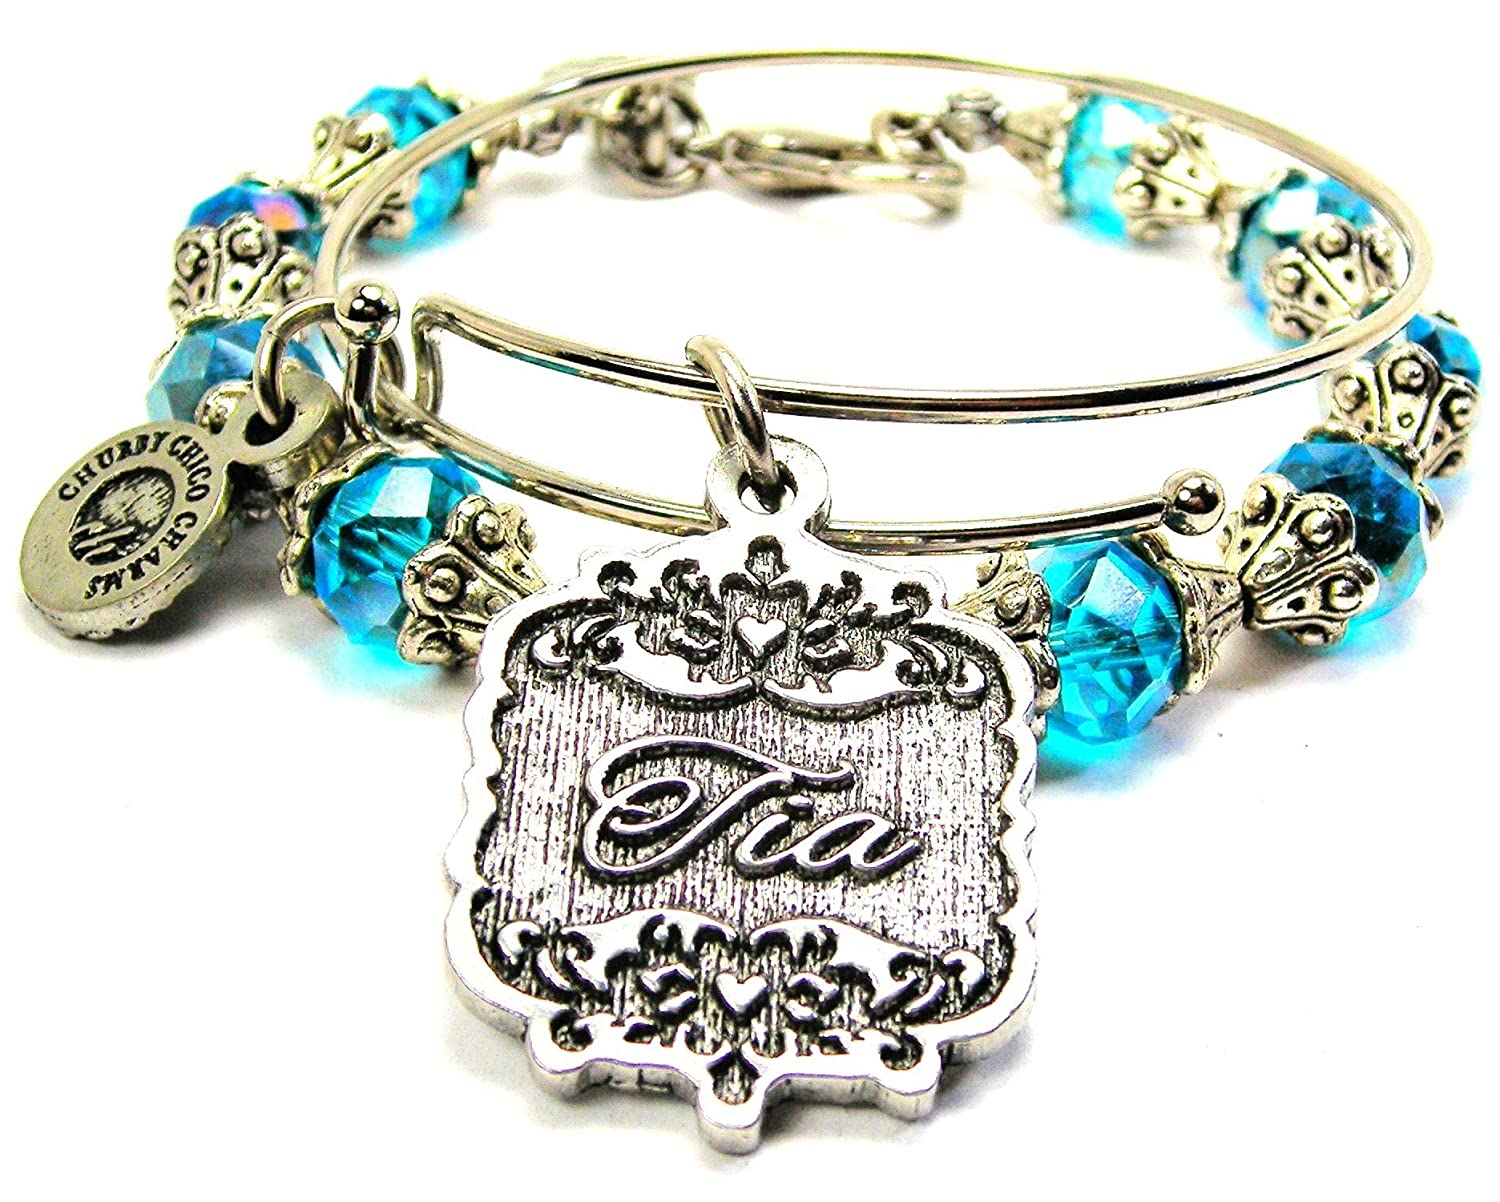 Chubby Chico Charms Tia Victorian Scroll Crystal Collection Bracelet Set in Aqua Blue